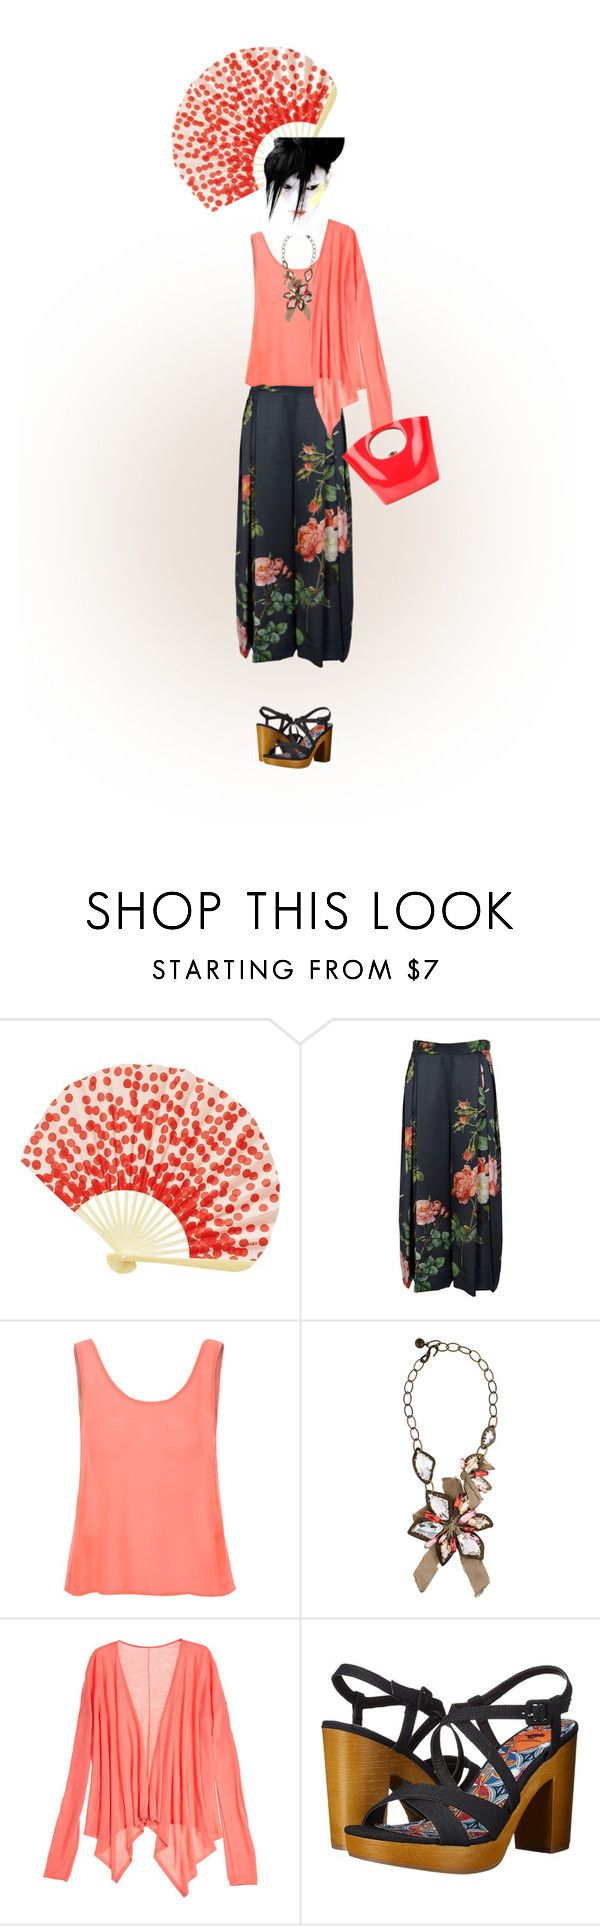 """""""I'm Craving Salmon!"""" by petalp ❤ liked on Polyvore featuring HAY, Glamorous, Lanvin, Calypso St. Barth, Rocket Dog, Rocio, women's clothing, women, female and woman"""